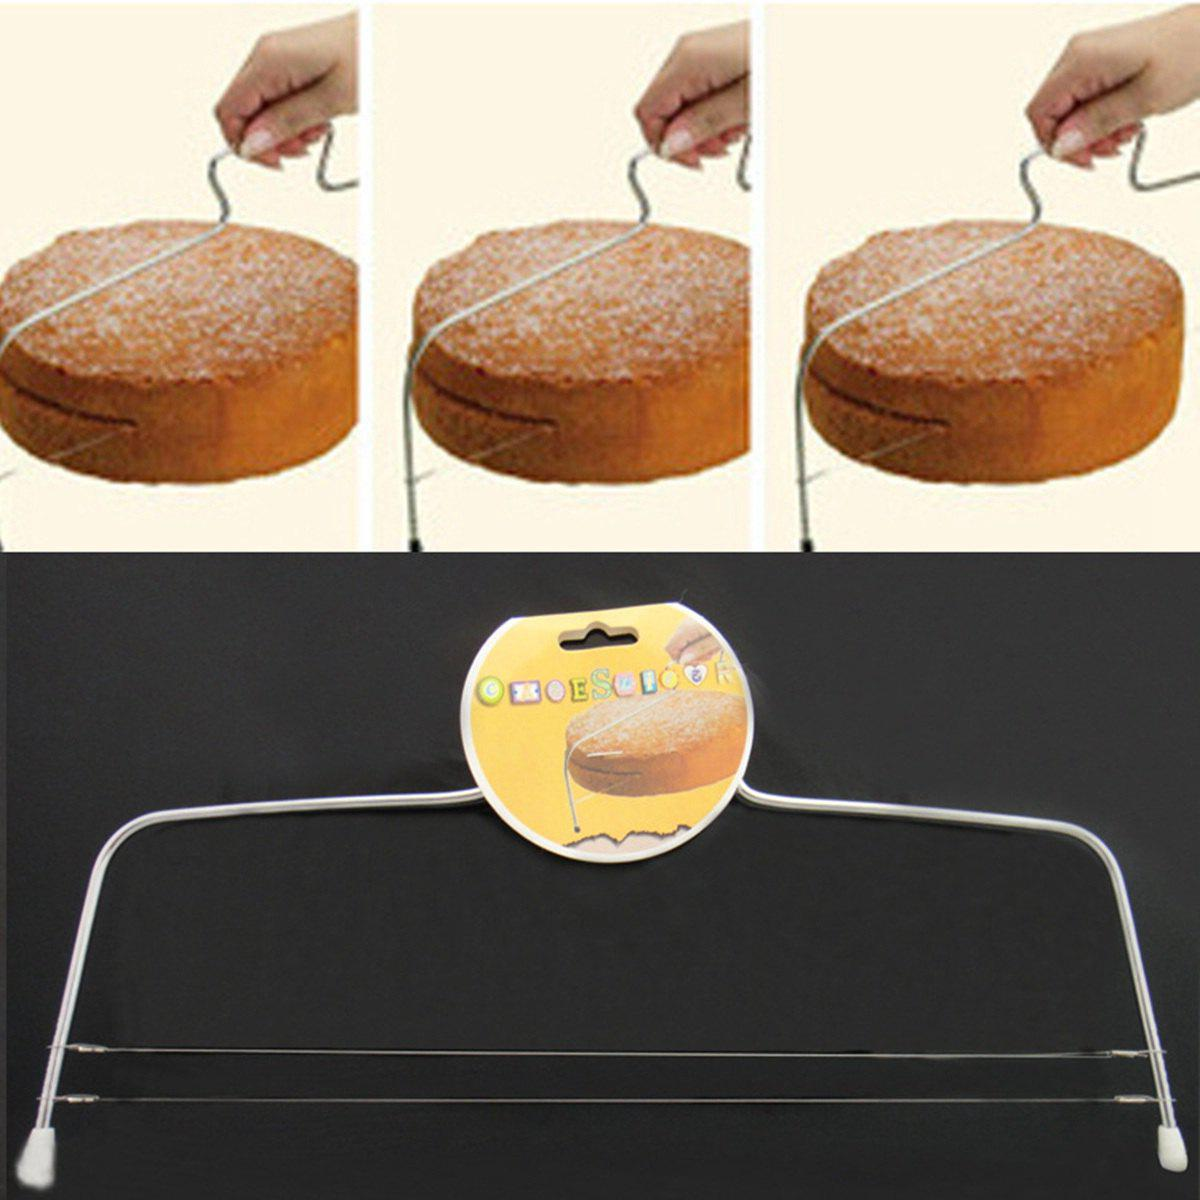 Practical Stainless Steel Cake Cutter Printing Mold Bakeware Kitchen AccessoriesHOME<br><br>Color: SILVER; Type: Kitchen Gadgets; For: Home; Material: Stainless Steel; Features: Convenience; Color: Silver; Product weight: 0.063 kg; Package weight: 0.121 kg; Product size (L x W x H): 34.3 x 15.8 x 0.5 cm / 13.48 x 6.21 x 0.20 inches; Package size (L x W x H): 40 x 8 x 3 cm / 15.72 x 3.14 x 1.18 inches; Package Contents: 1 x Cake Cutter;